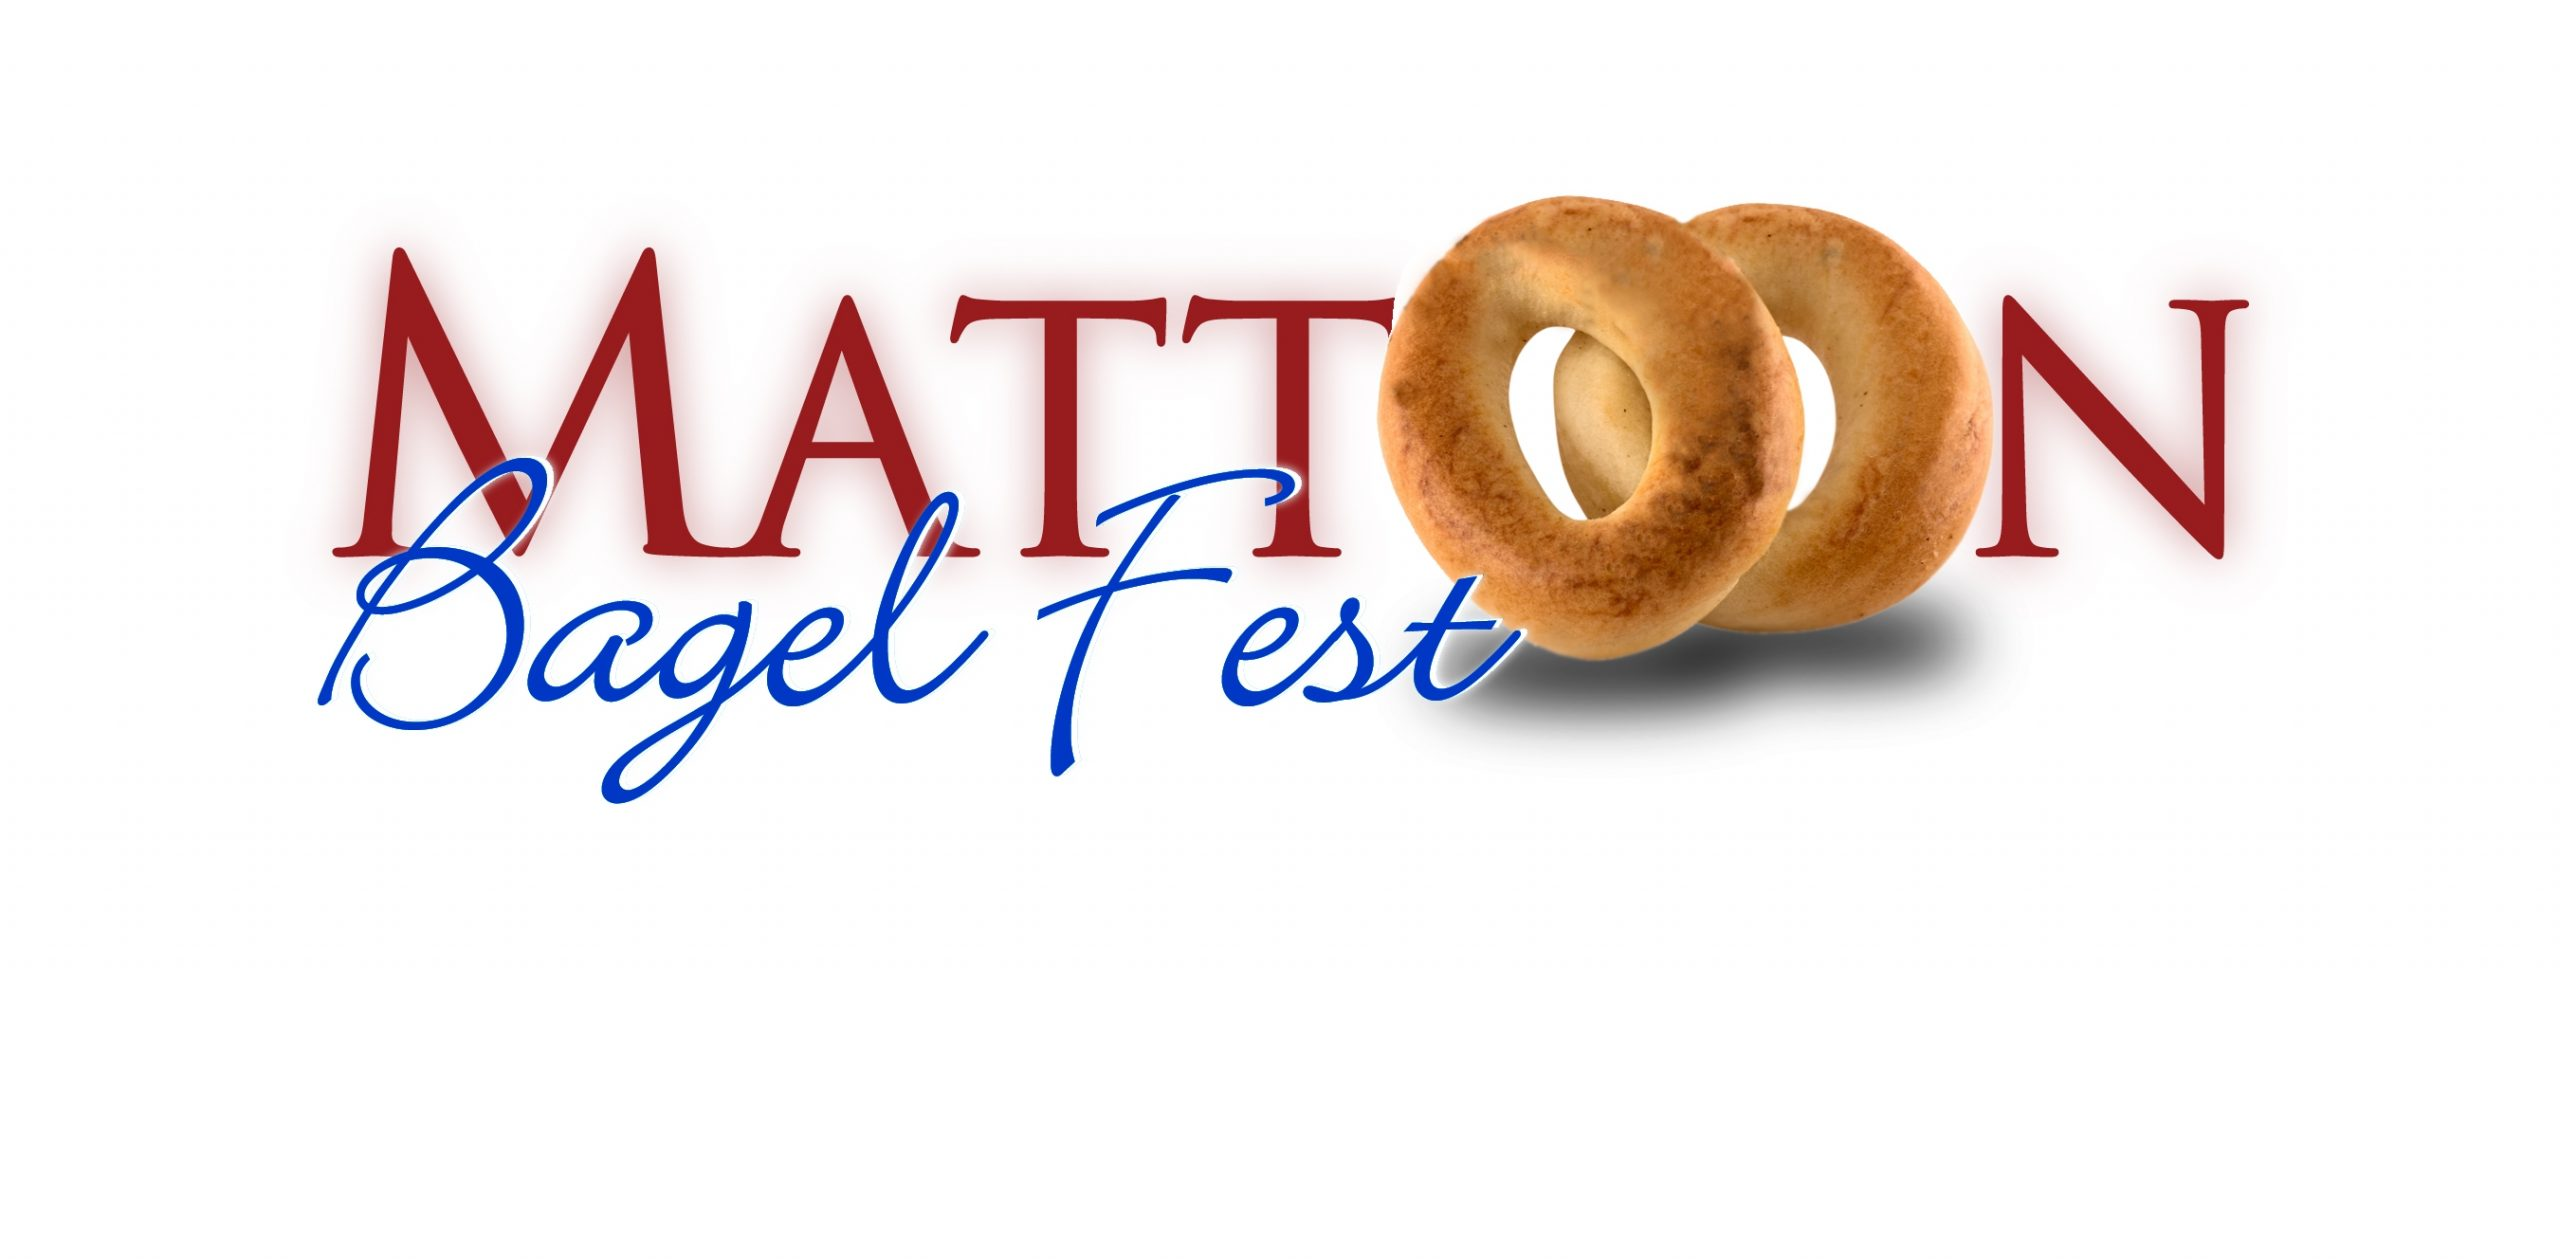 Mattoon Bagelfest Looking for Volunteers